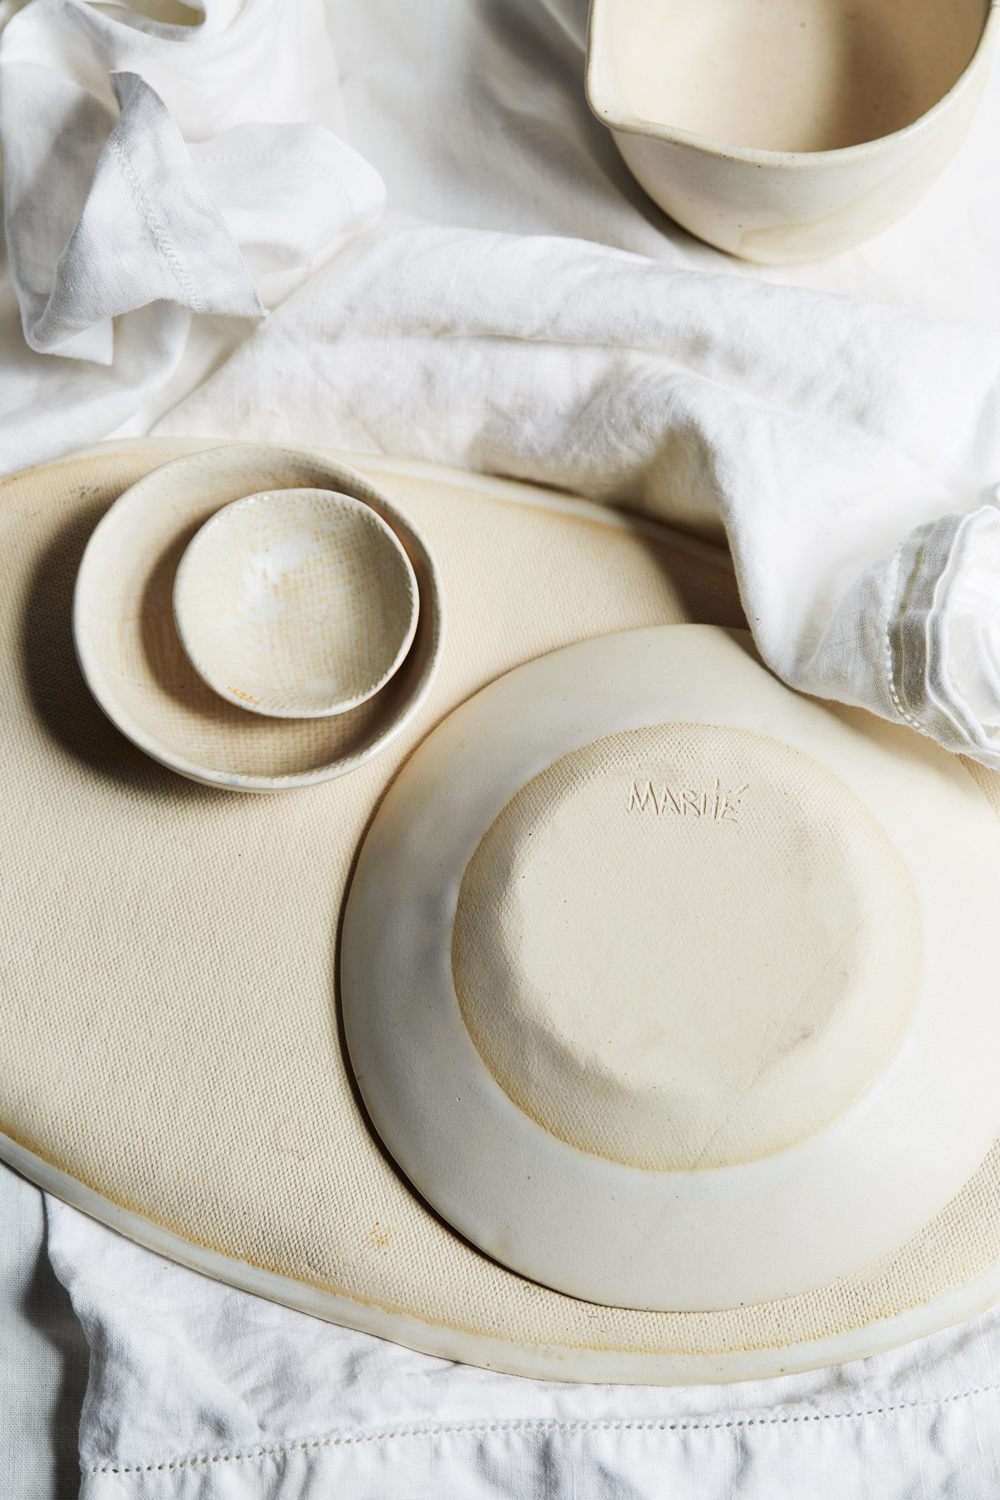 Marité's infamous style textured handmade pottery. Photo by Matité Acosta